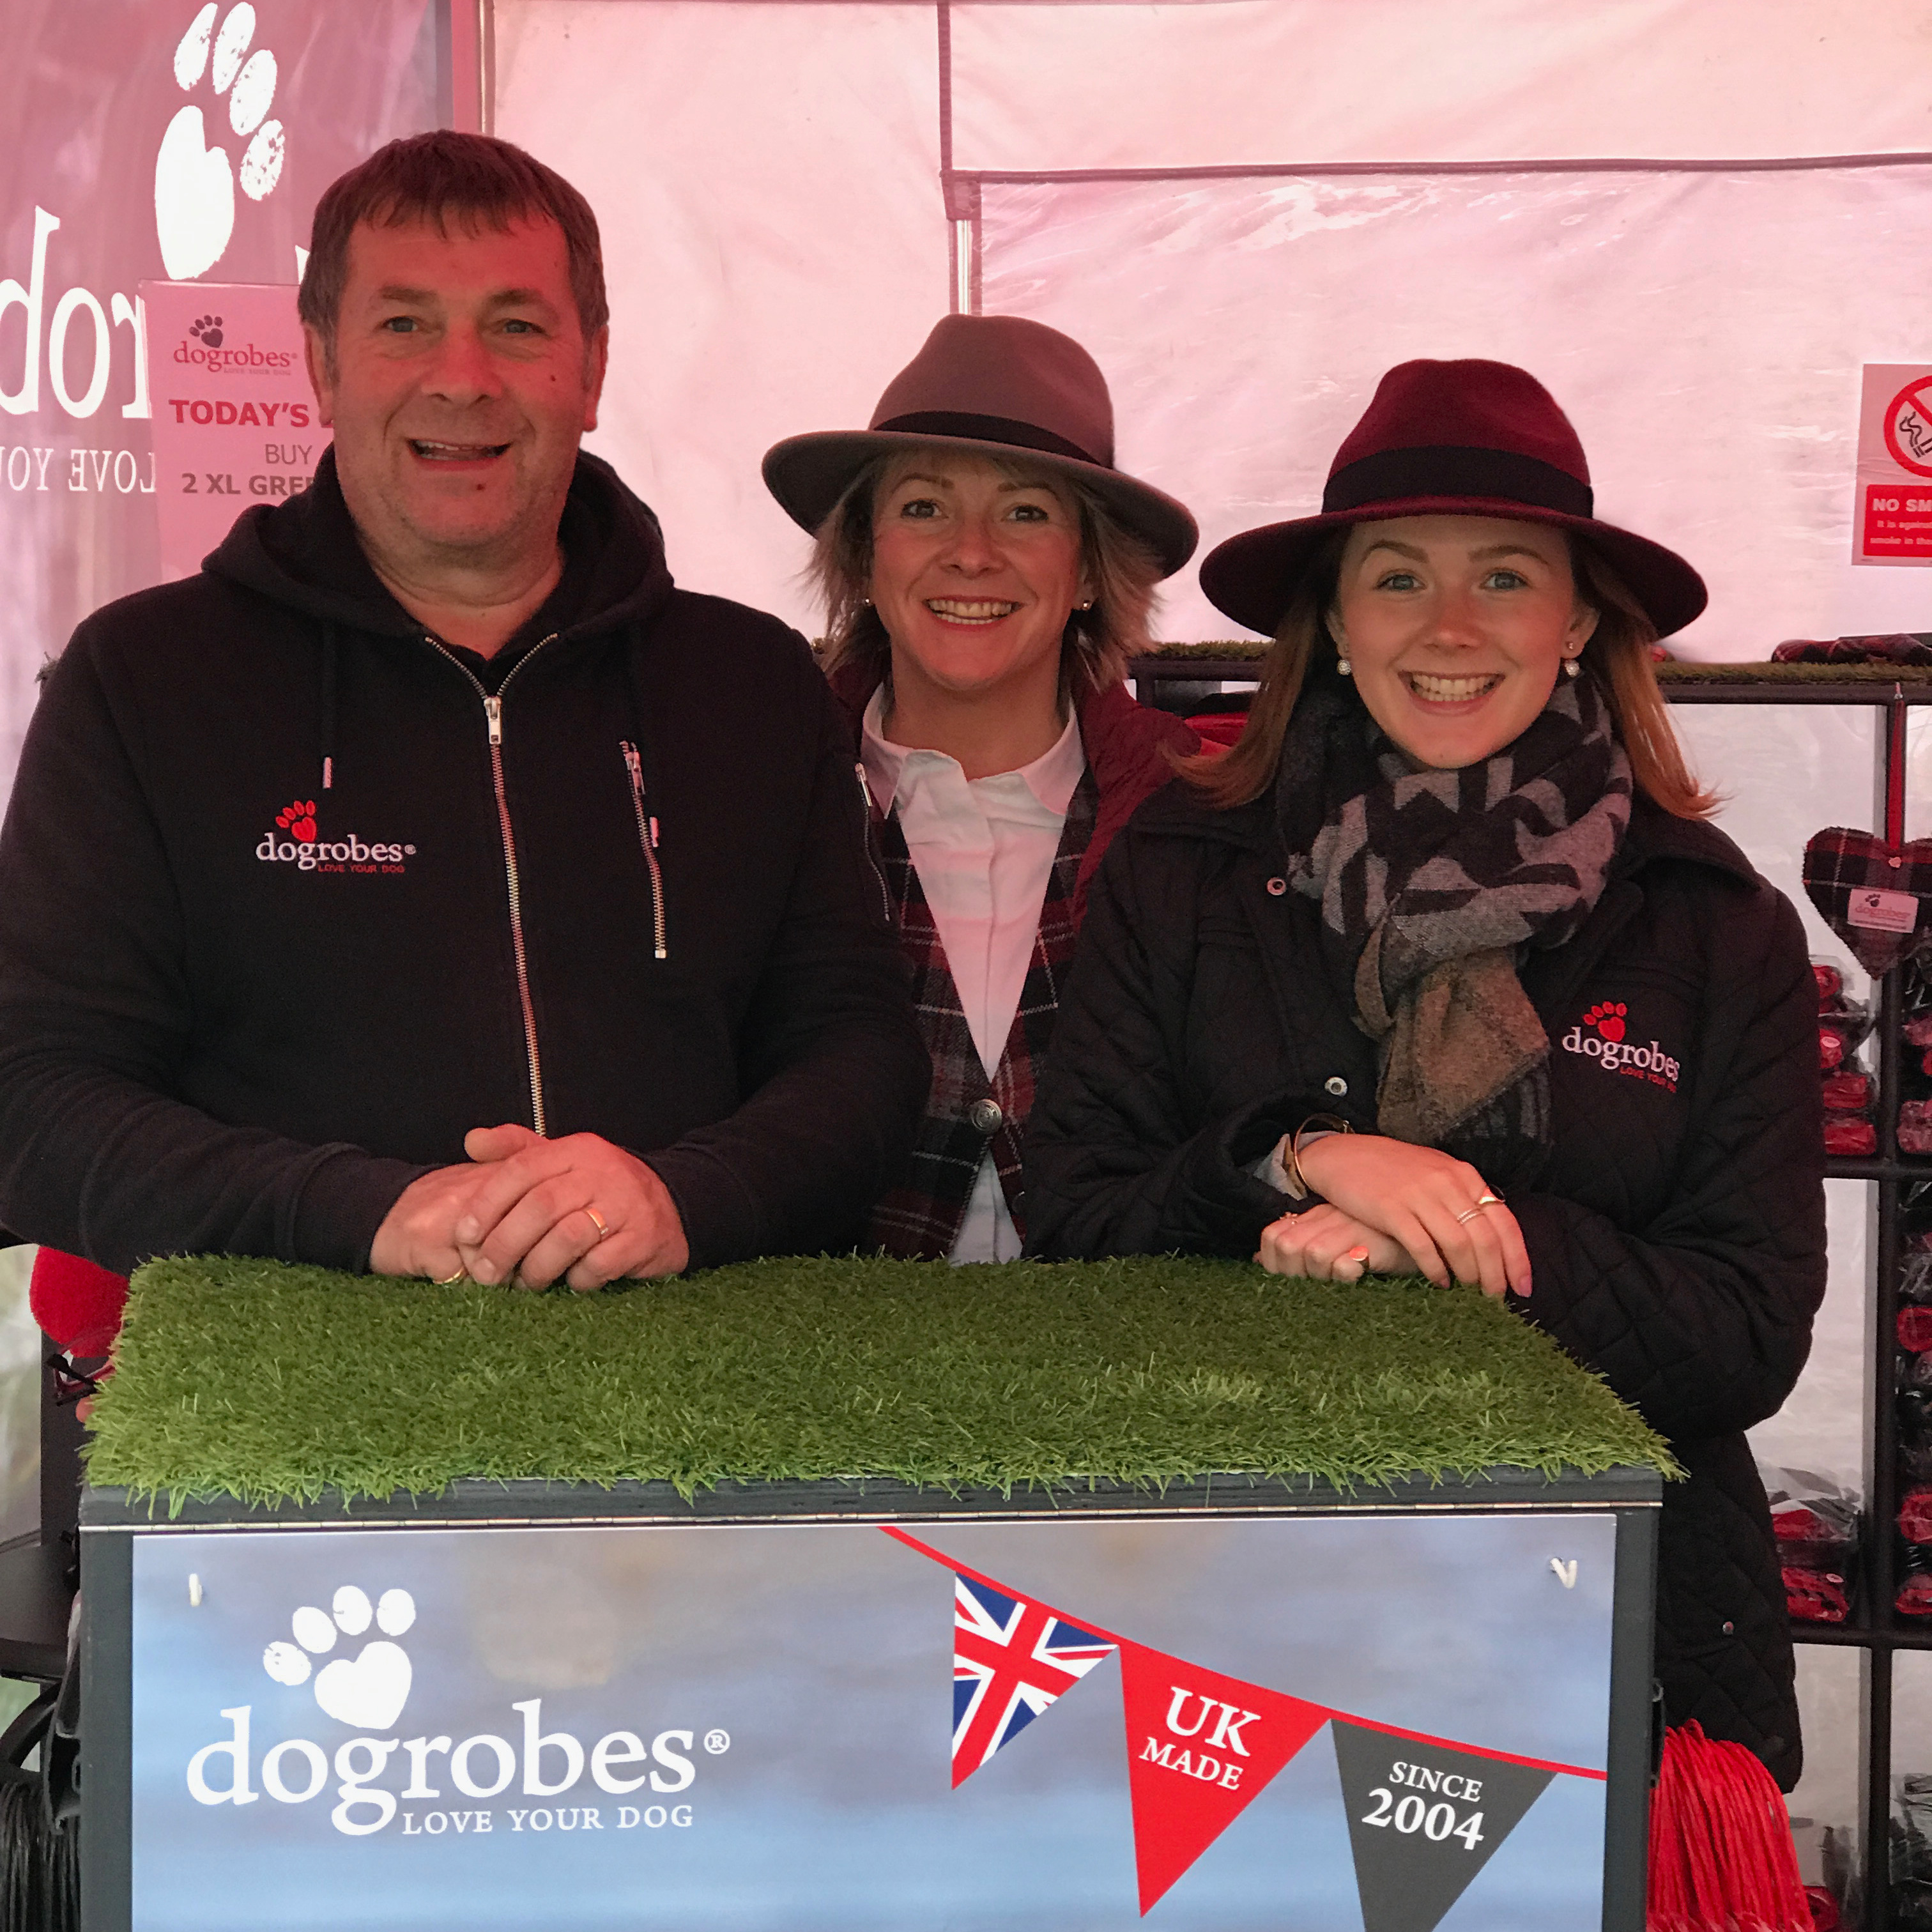 Martin, Margaret and Nicola Reynolds at an event with Dogrobes